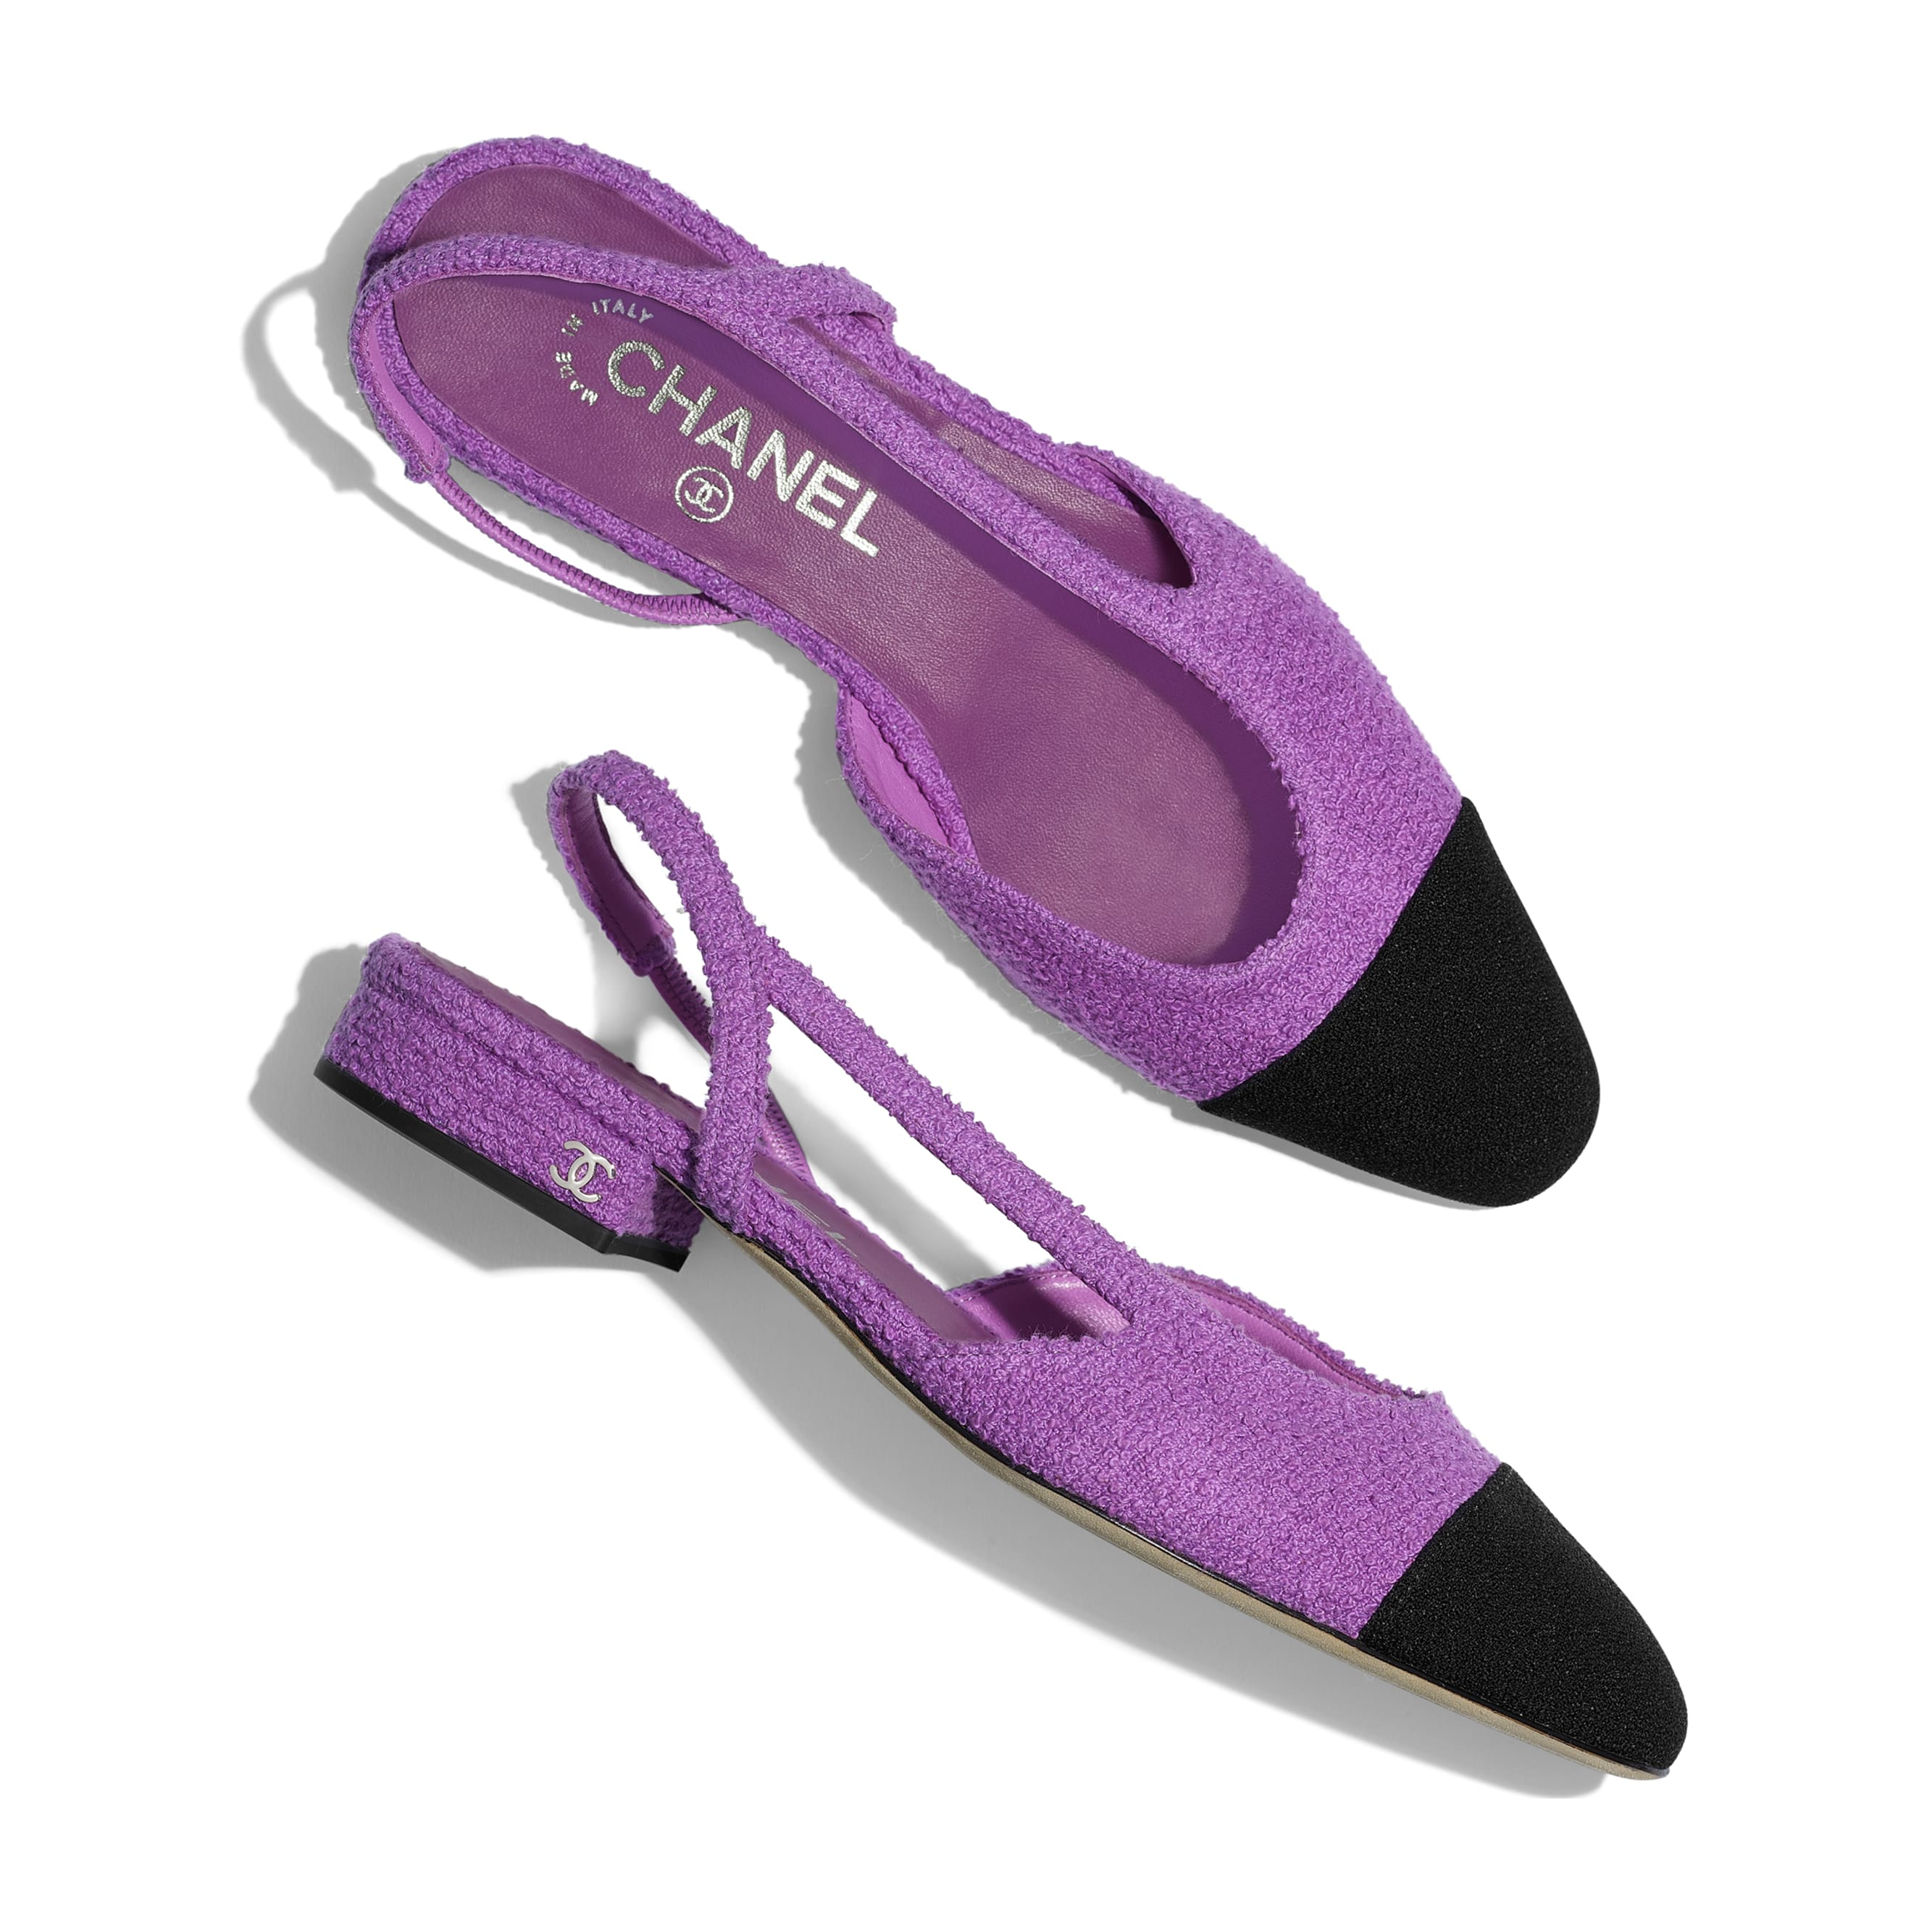 Slingbacks - Purple & Black - Cotton Tweed - CHANEL - Extra view - see standard sized version